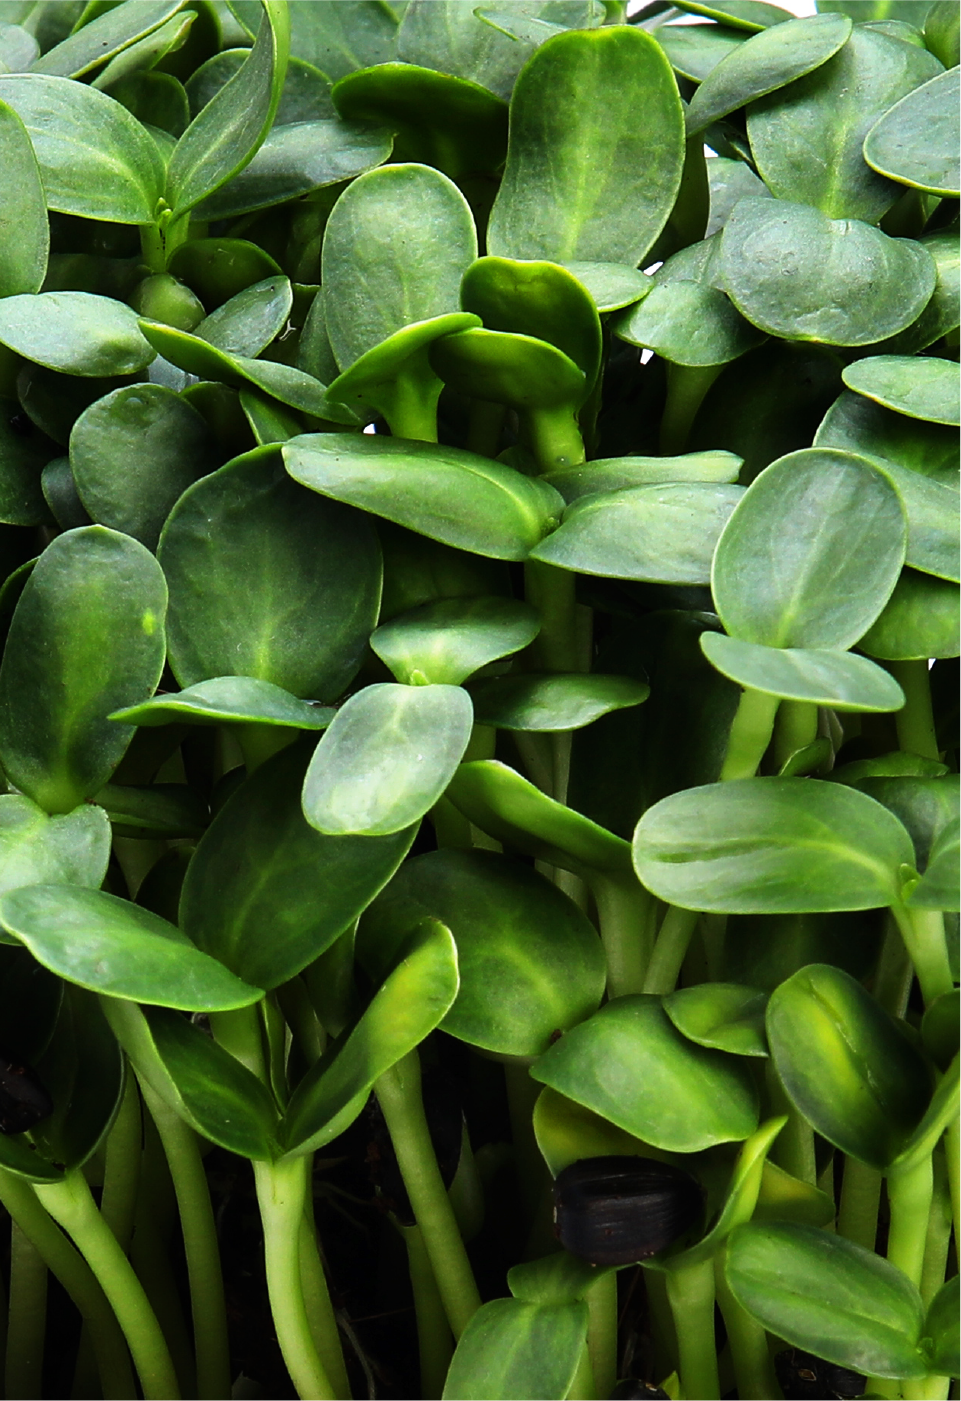 Microgreens micro greens nutrition antioxidants